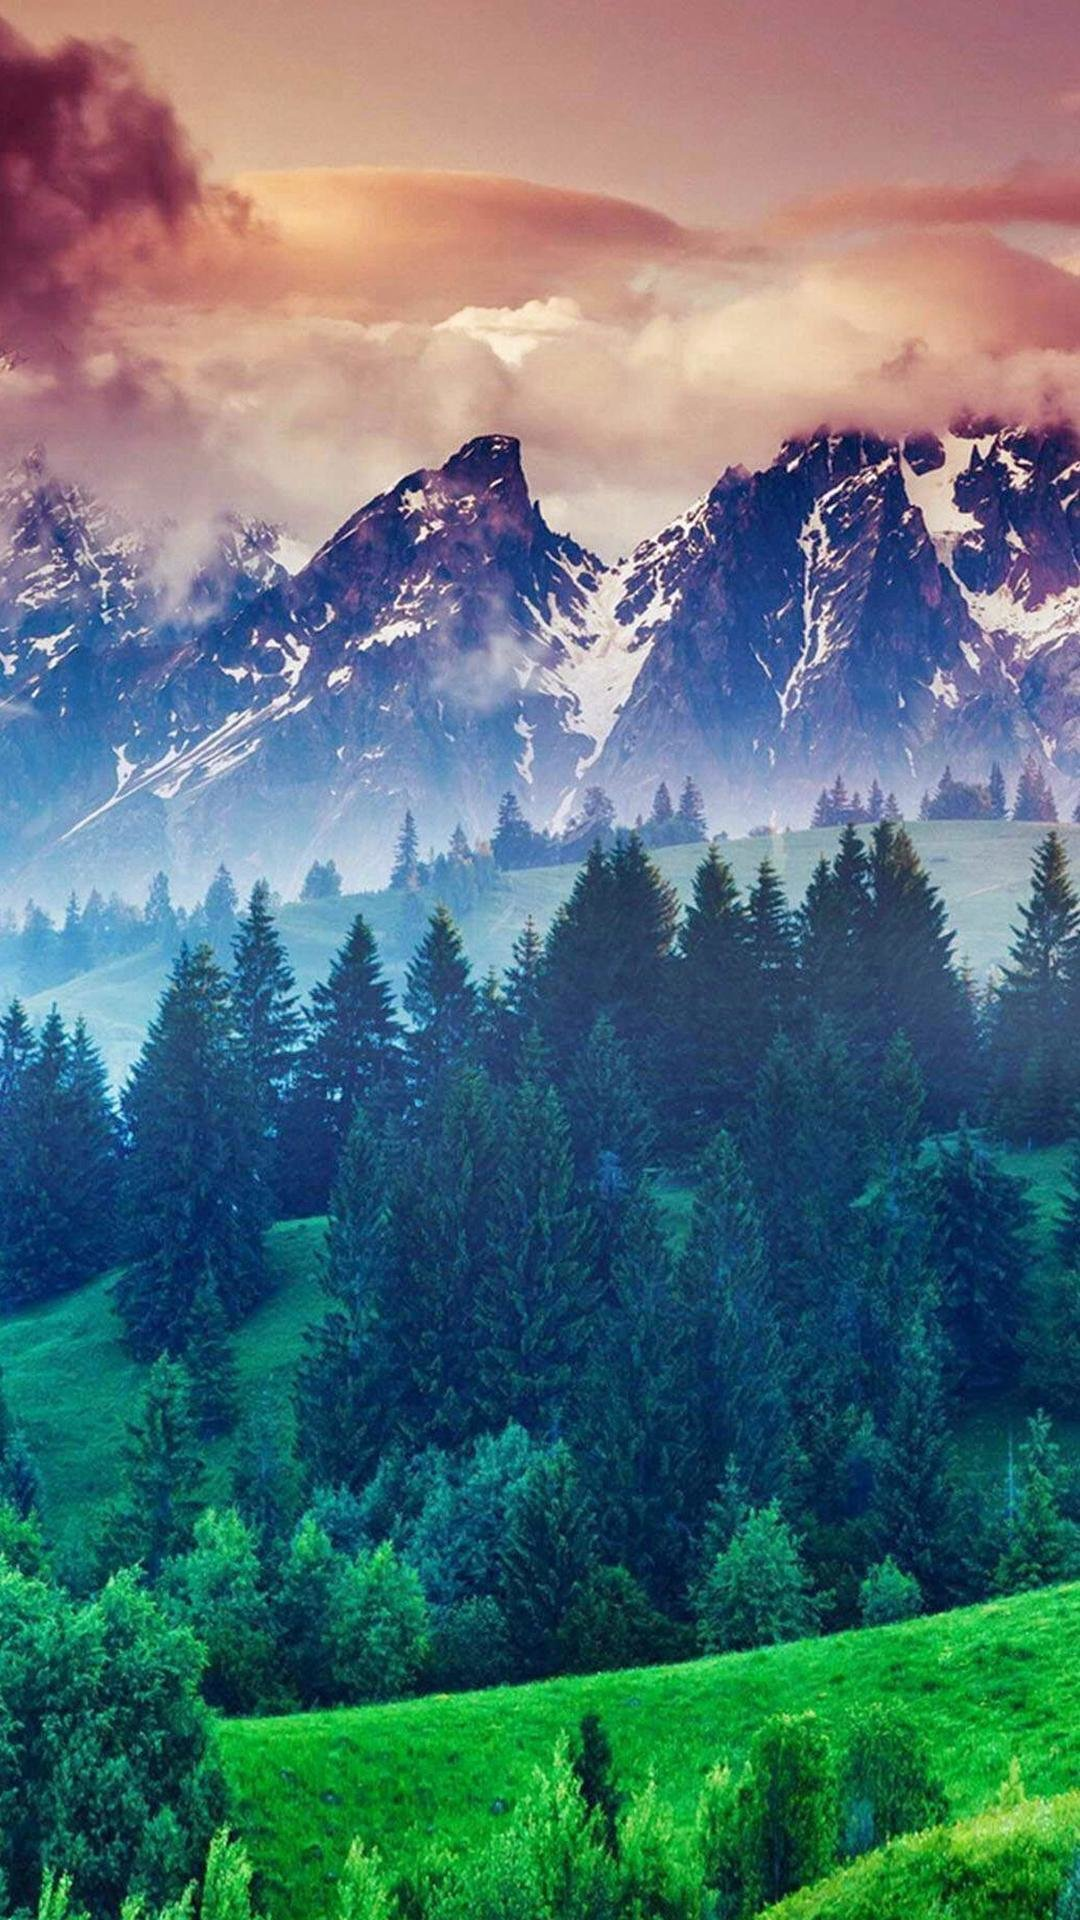 Free Download 15 Best Nature Wallpapers In 4k And Full Hd For